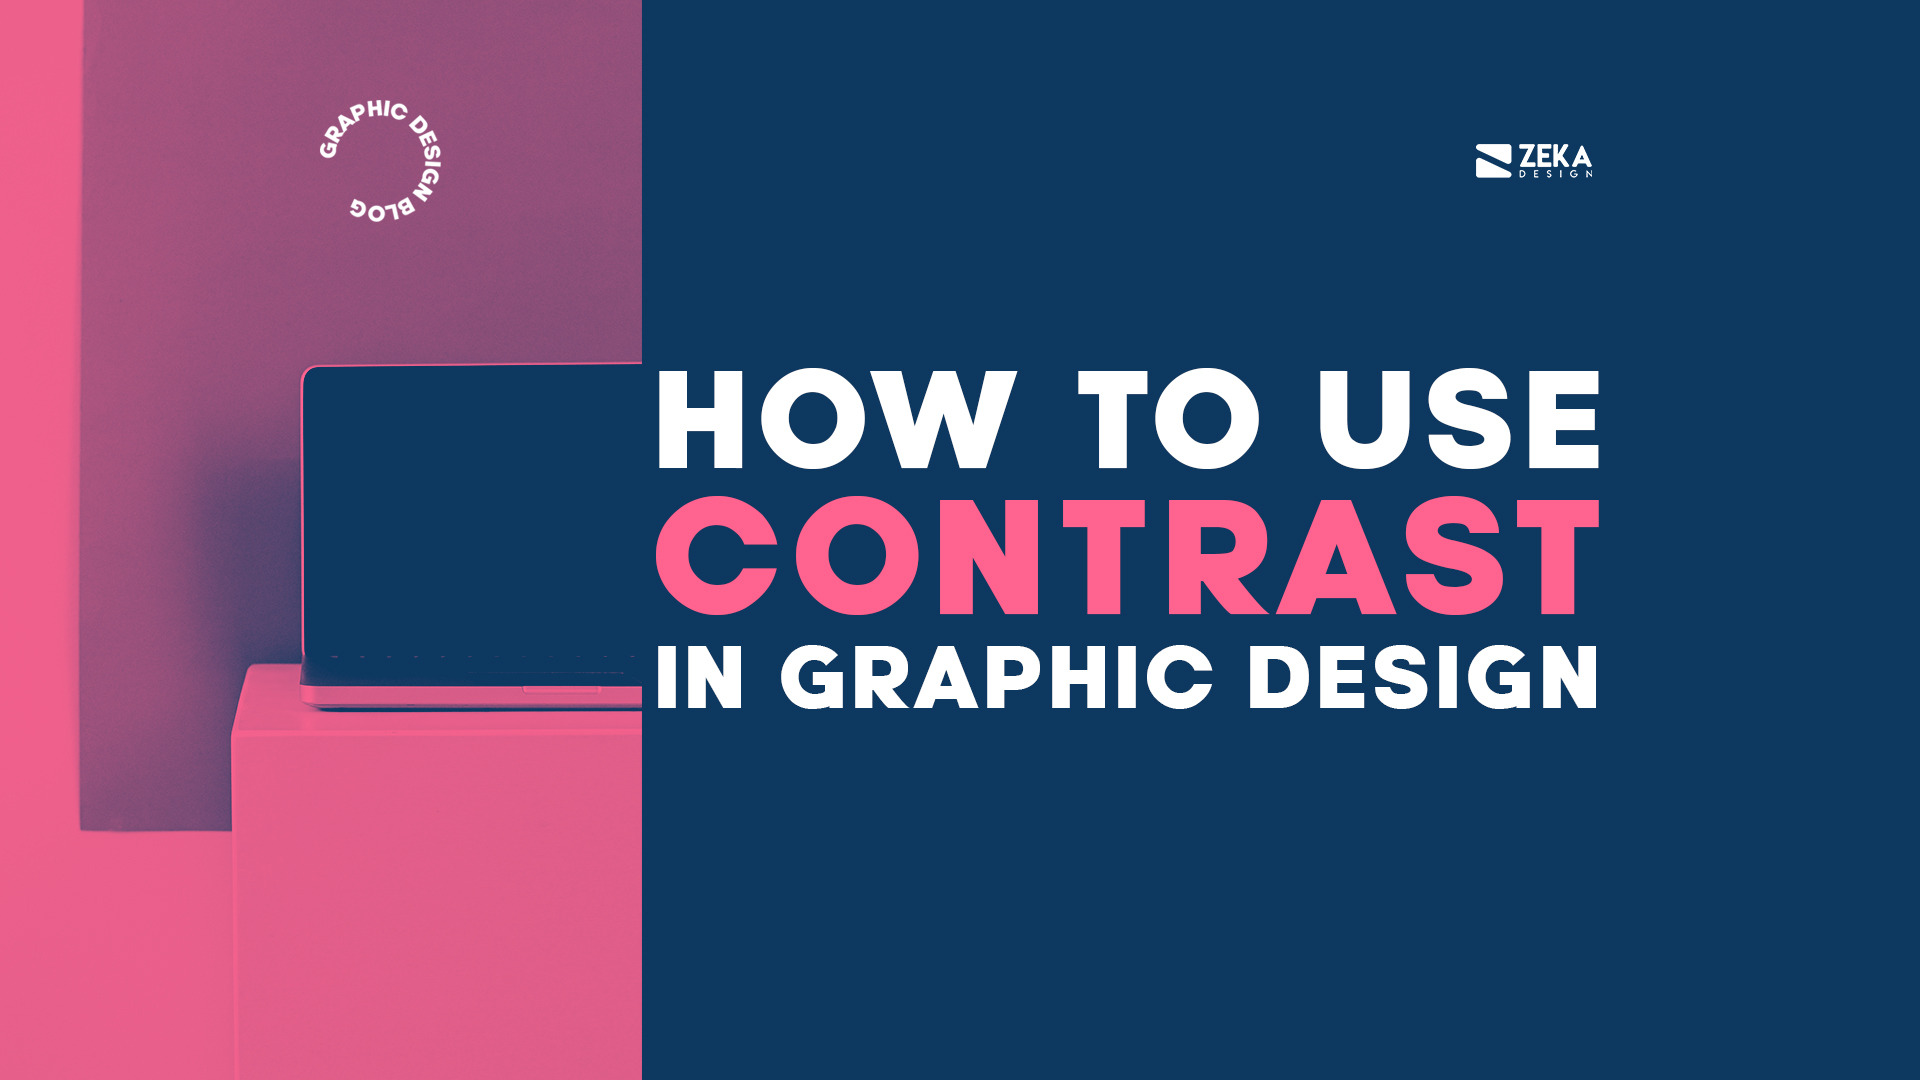 How To Use Contrast in Graphic Design Visual Hierarchy Principles Explained